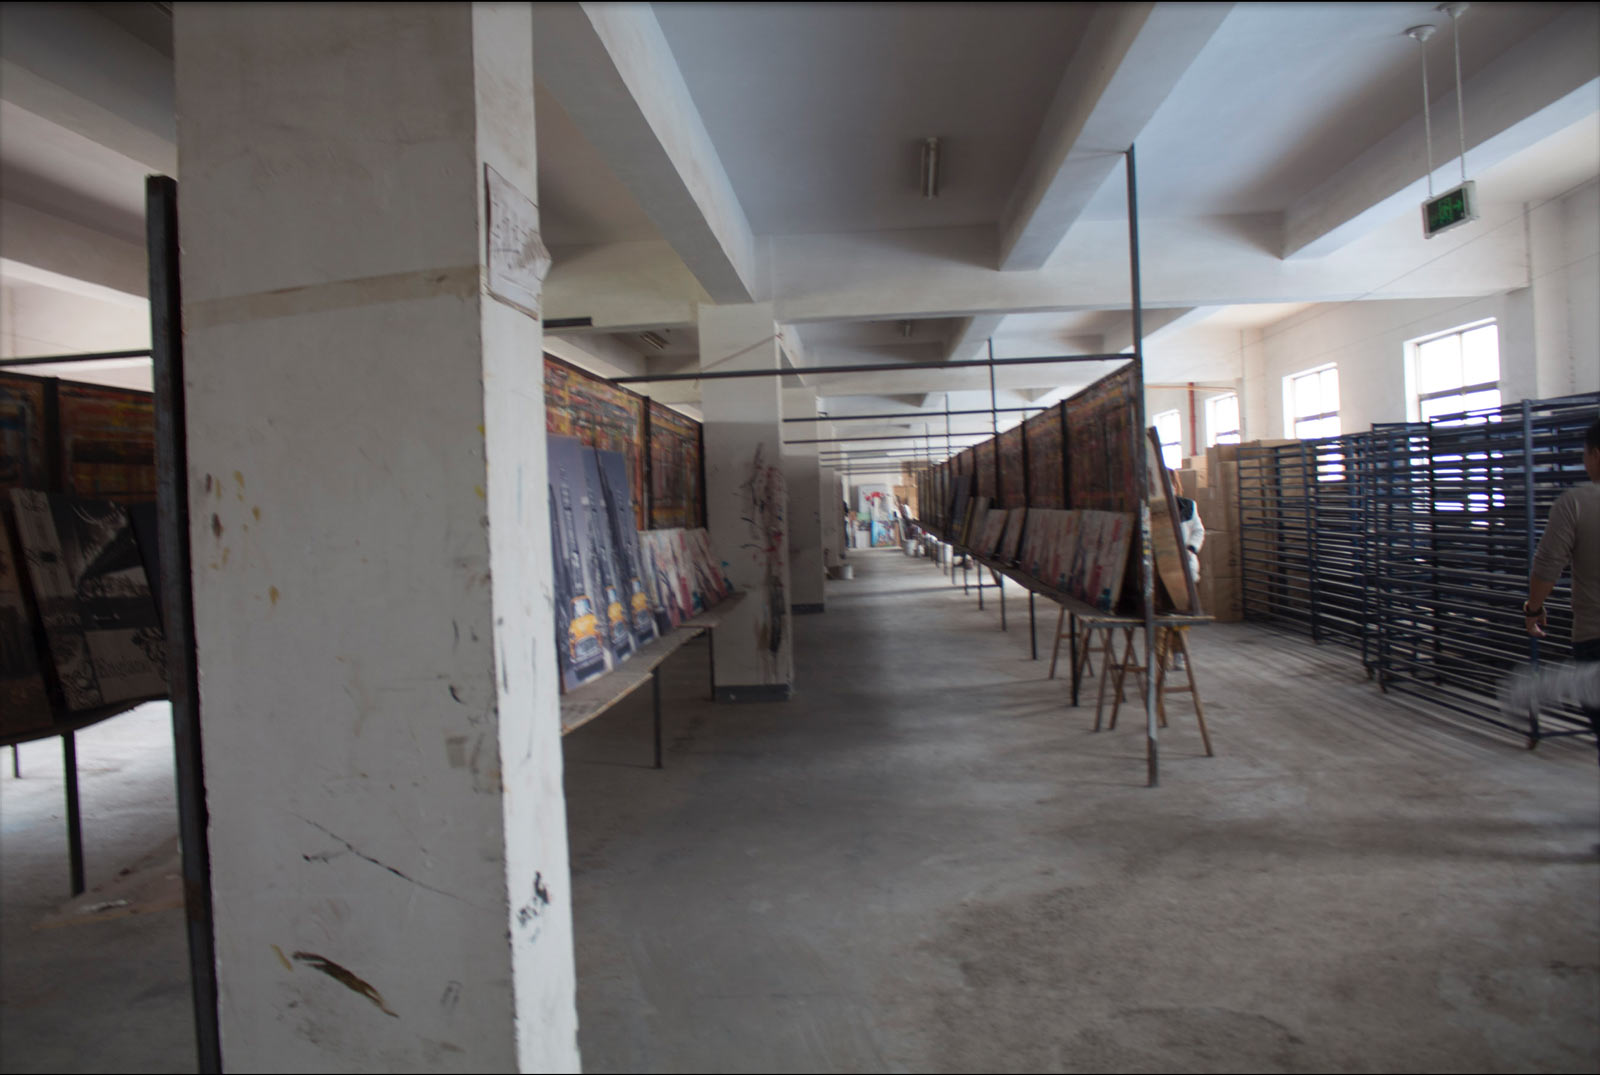 A painting factory that specialized in reproductions in Yiwu